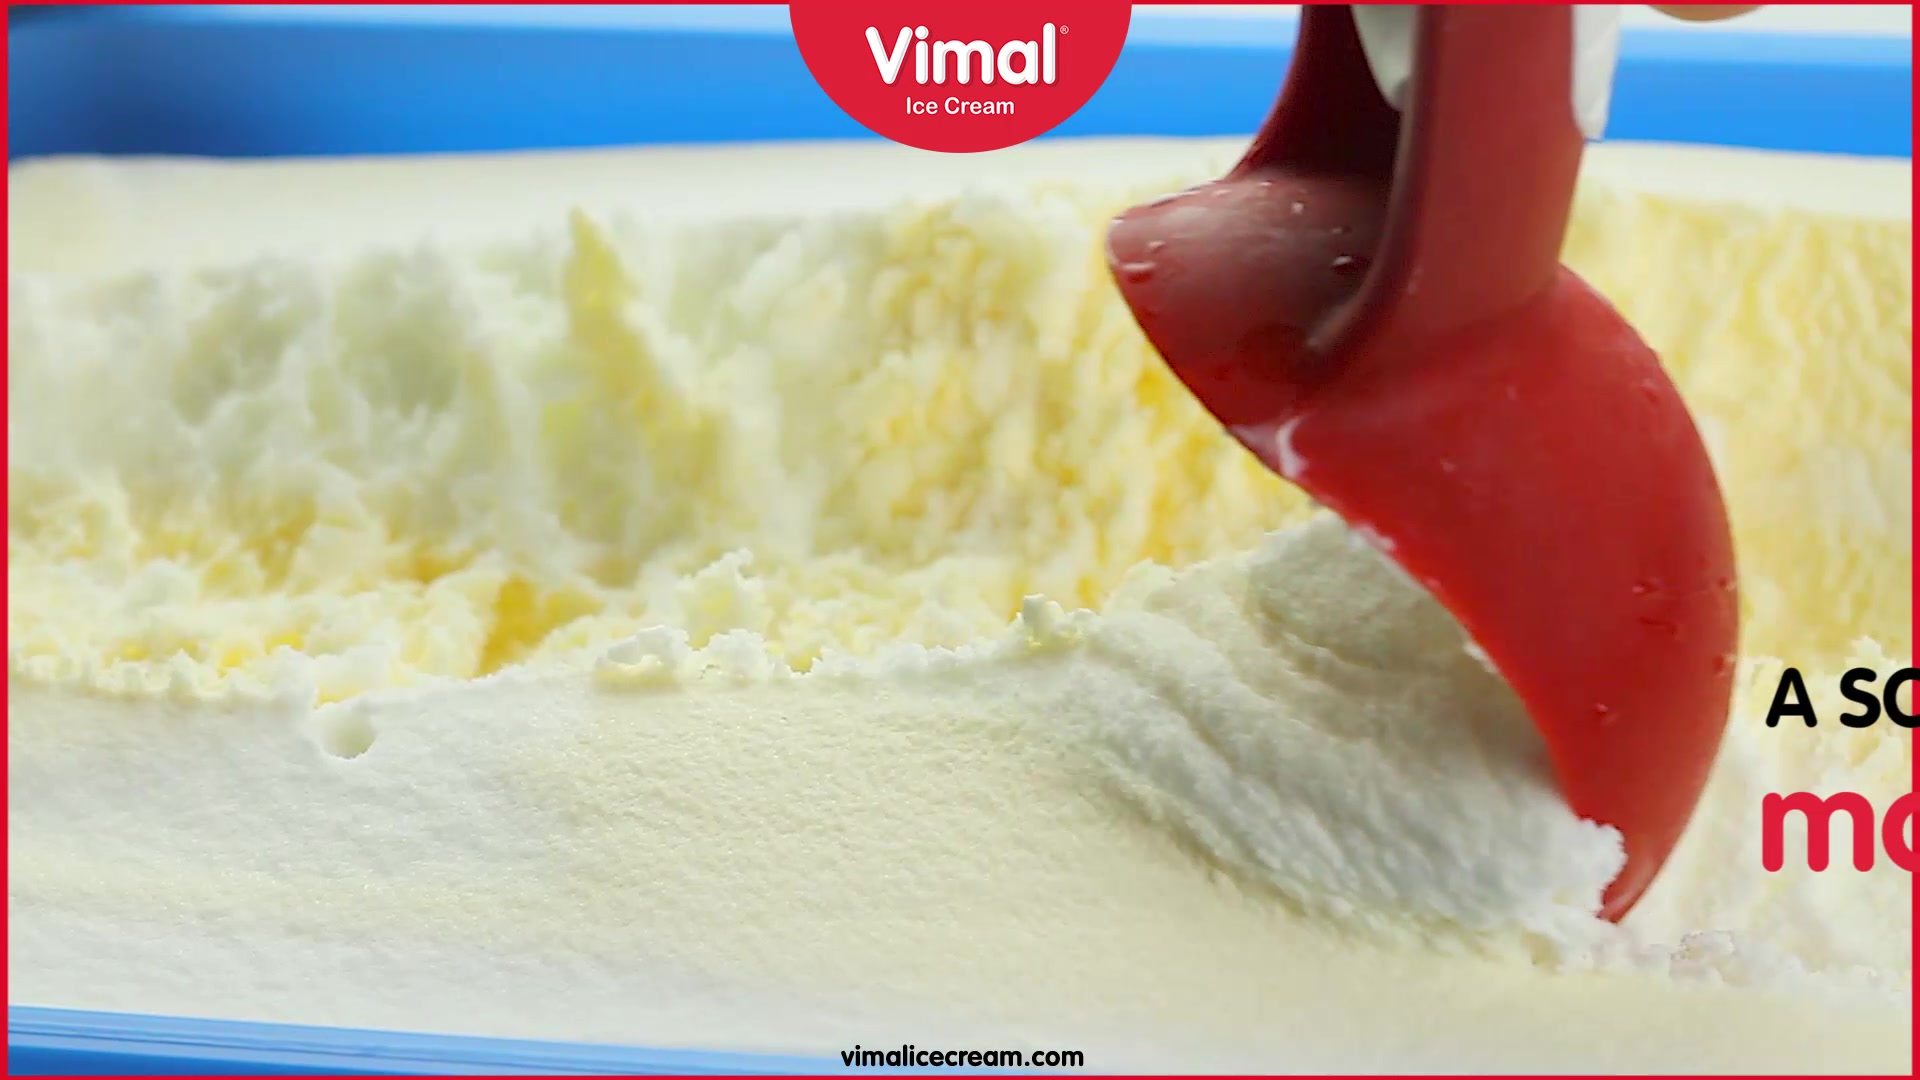 Cure your Monday blues with a scoop of delicious Vimal Icecream  #VimalIceCream #Icecreamisbae #Happiness #LoveForIcecream #IcecreamTime #IceCreamLovers #FrostyLips #Vimal #IceCream #Ahmedabad